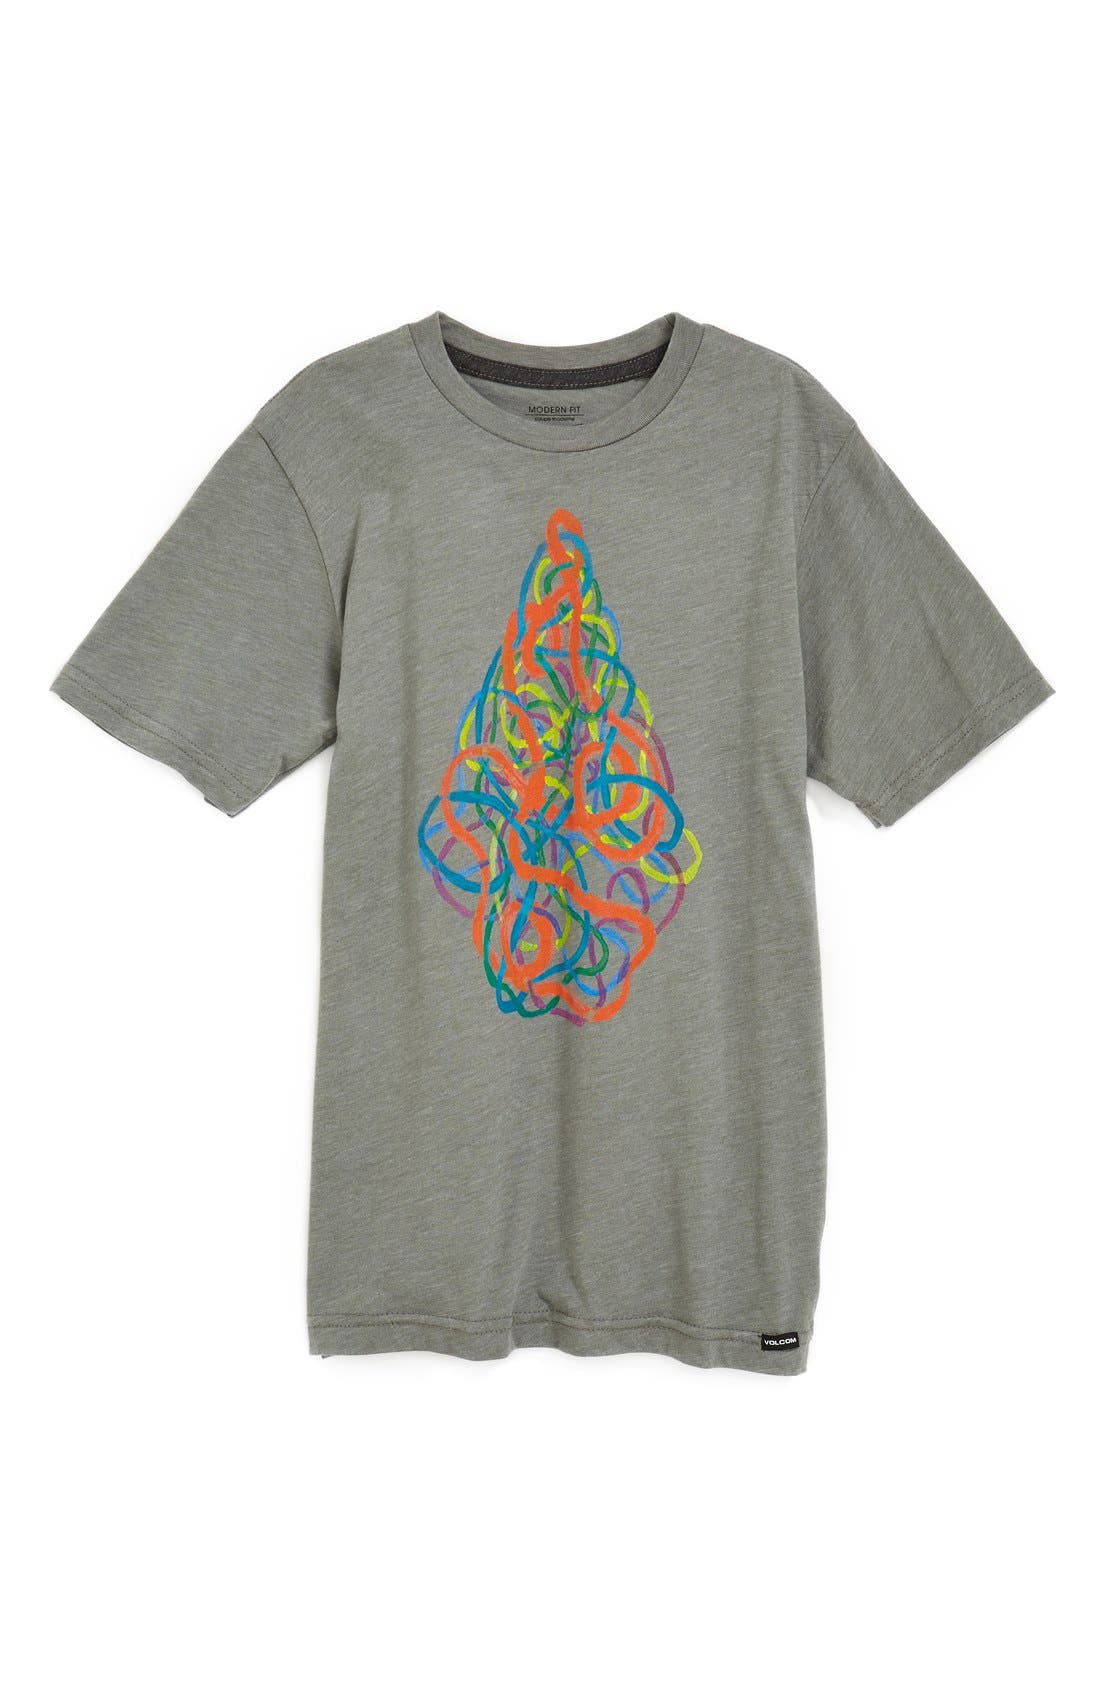 Alternate Image 1 Selected - Volcom 'Pathways' T-Shirt (Big Boys)